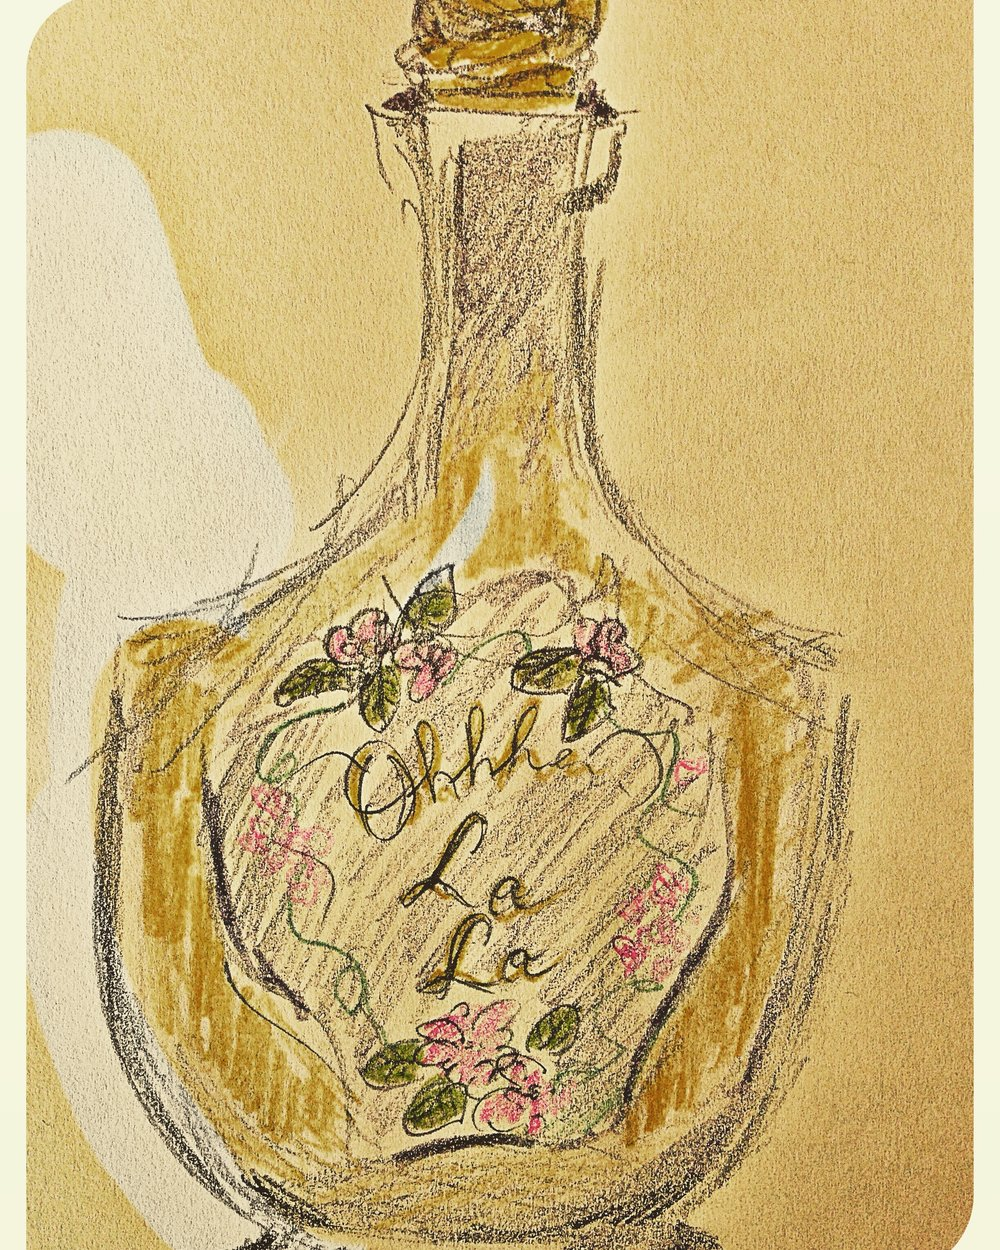 Memories are made of this - the shape and elegant line of a perfume bottle, the label, the stopper and the provocative ghost of fragrance... Illustration by Heather Phillips